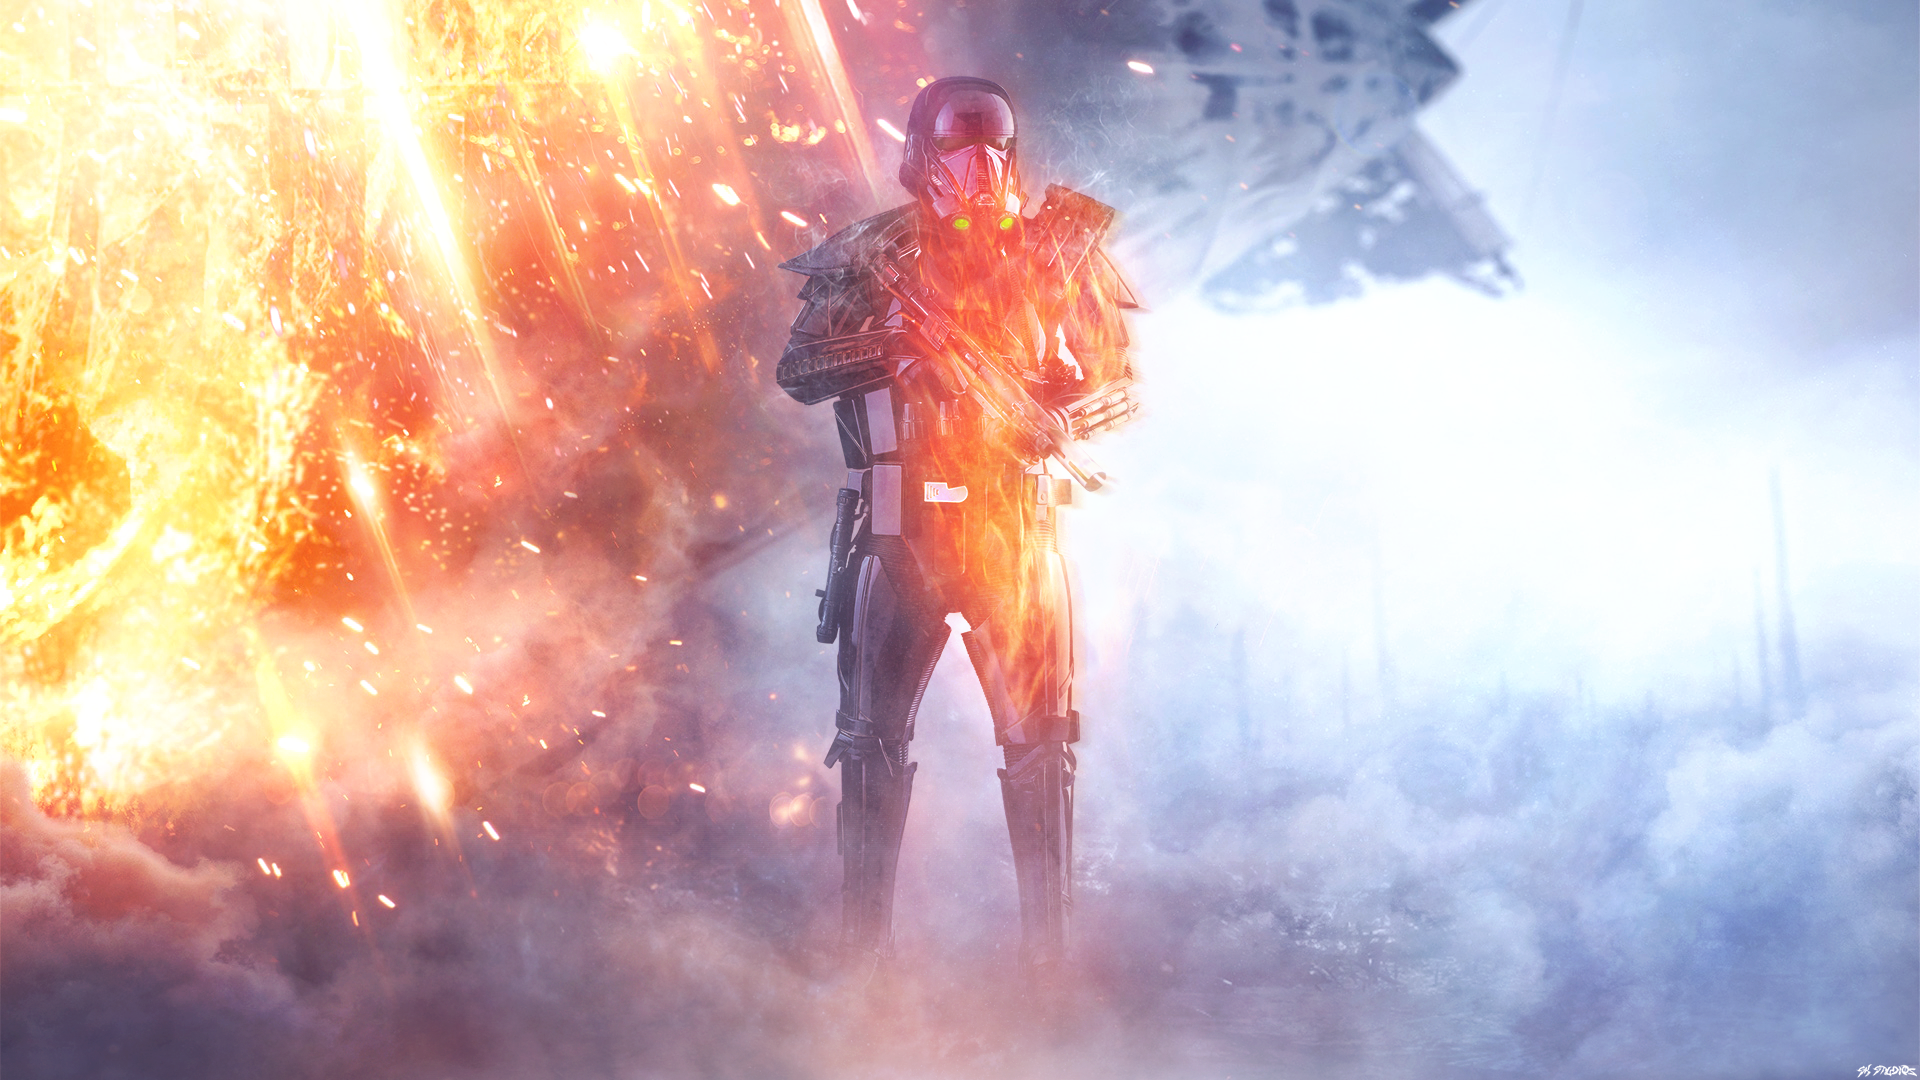 Sikh Wallpapers Hd For Iphone 5 Battlefront 1 Rogue One Death Trooper Full Hd Fond D 233 Cran